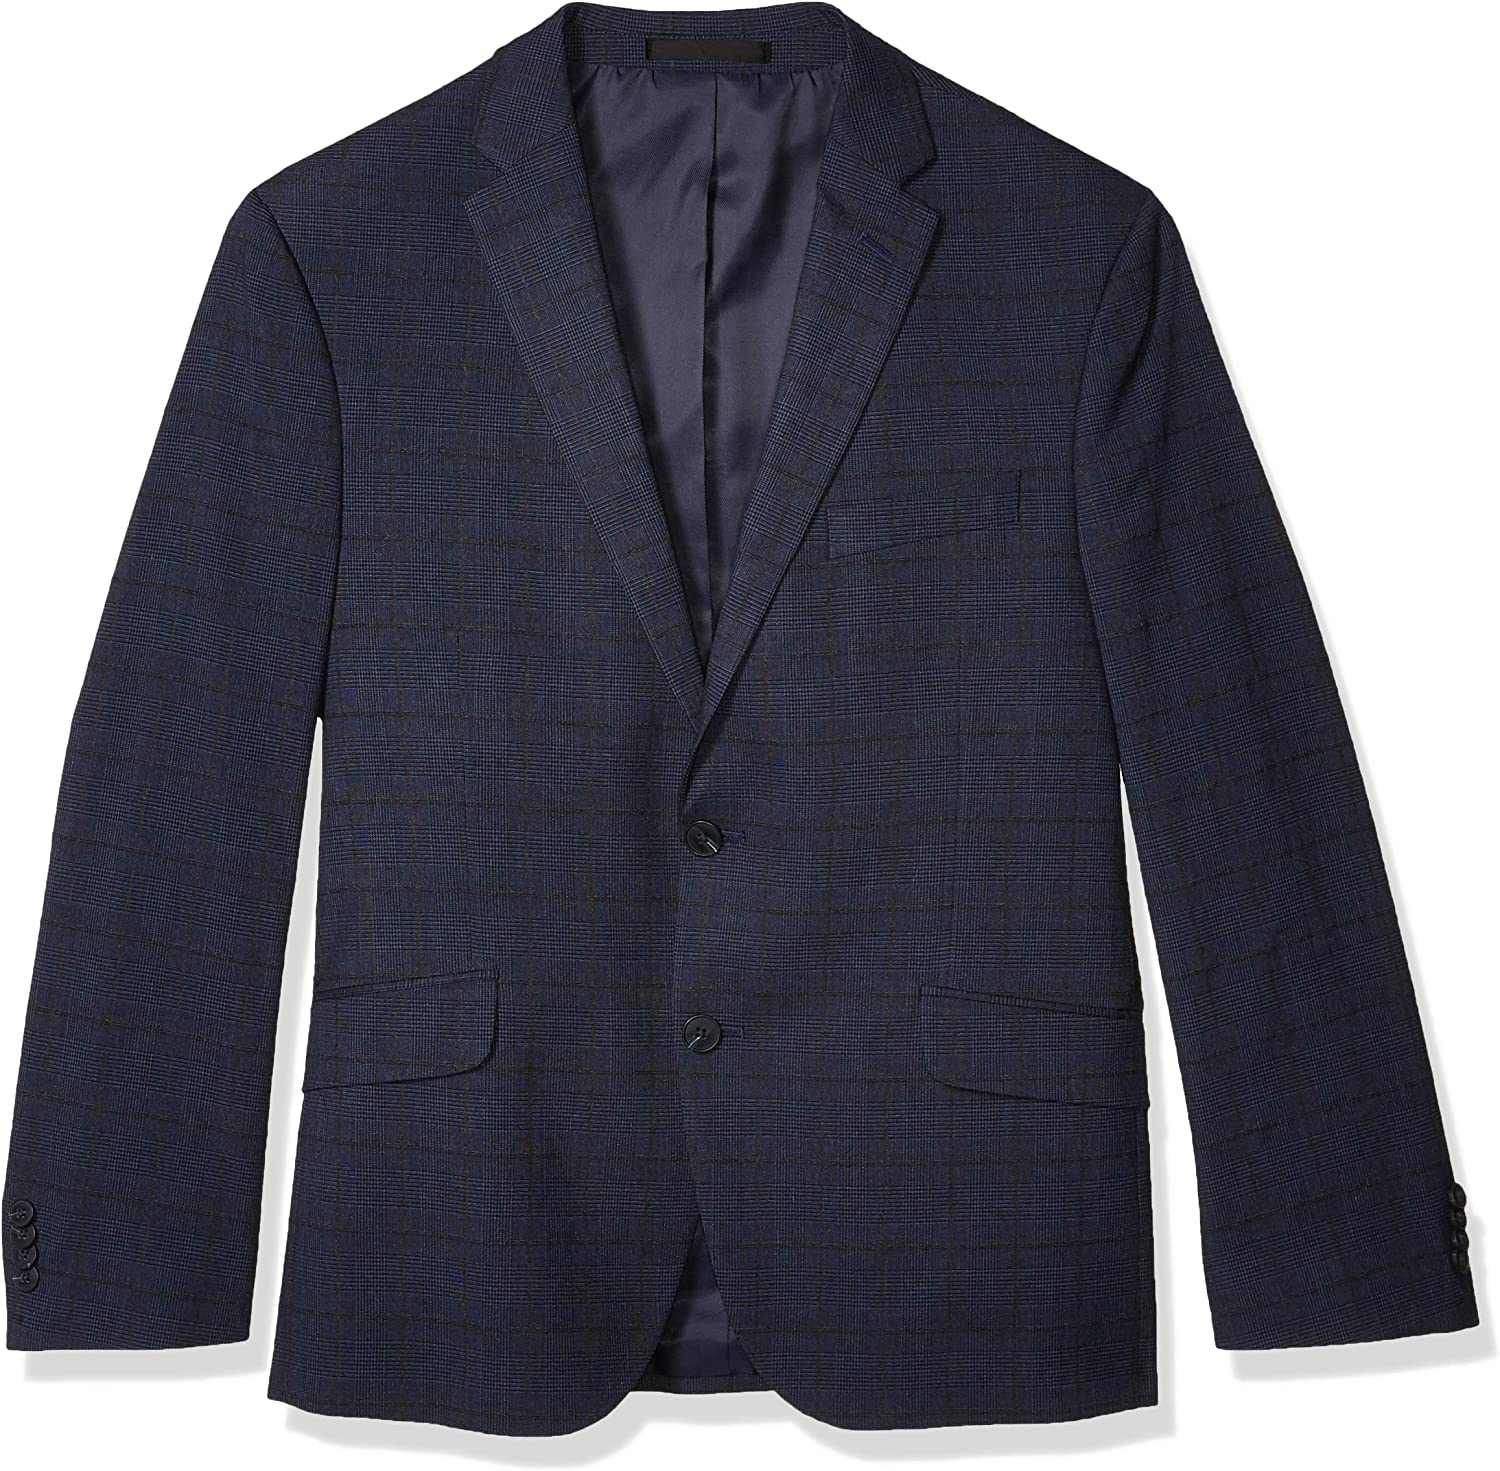 Kenneth Cole REACTION Slim Discount is All items free shipping also underway Fit Men's Blazer